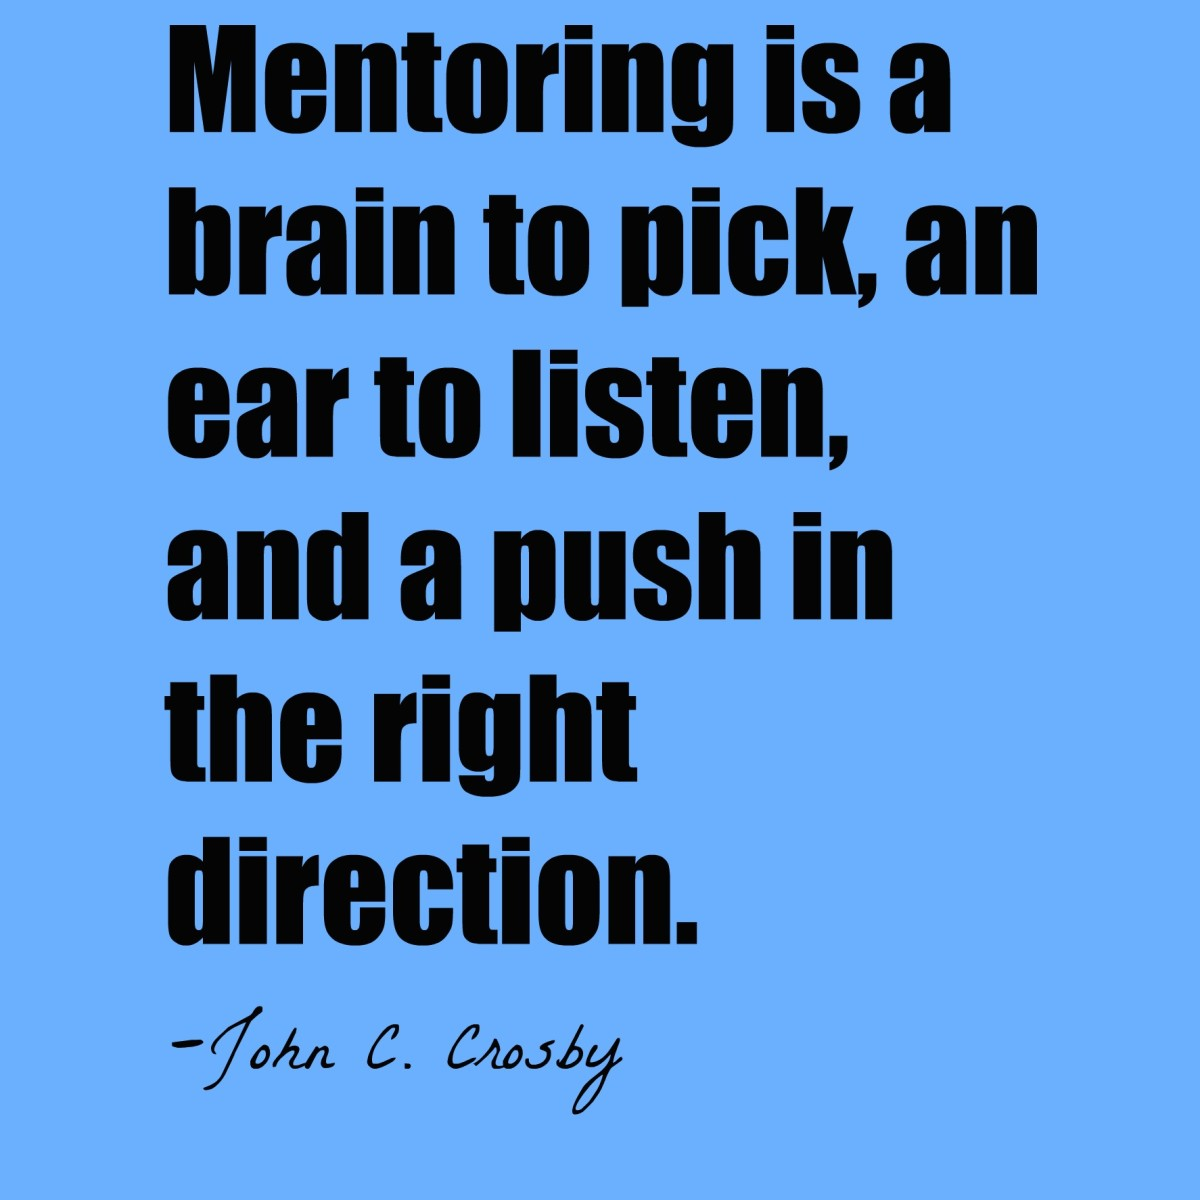 Quote on mentorship.